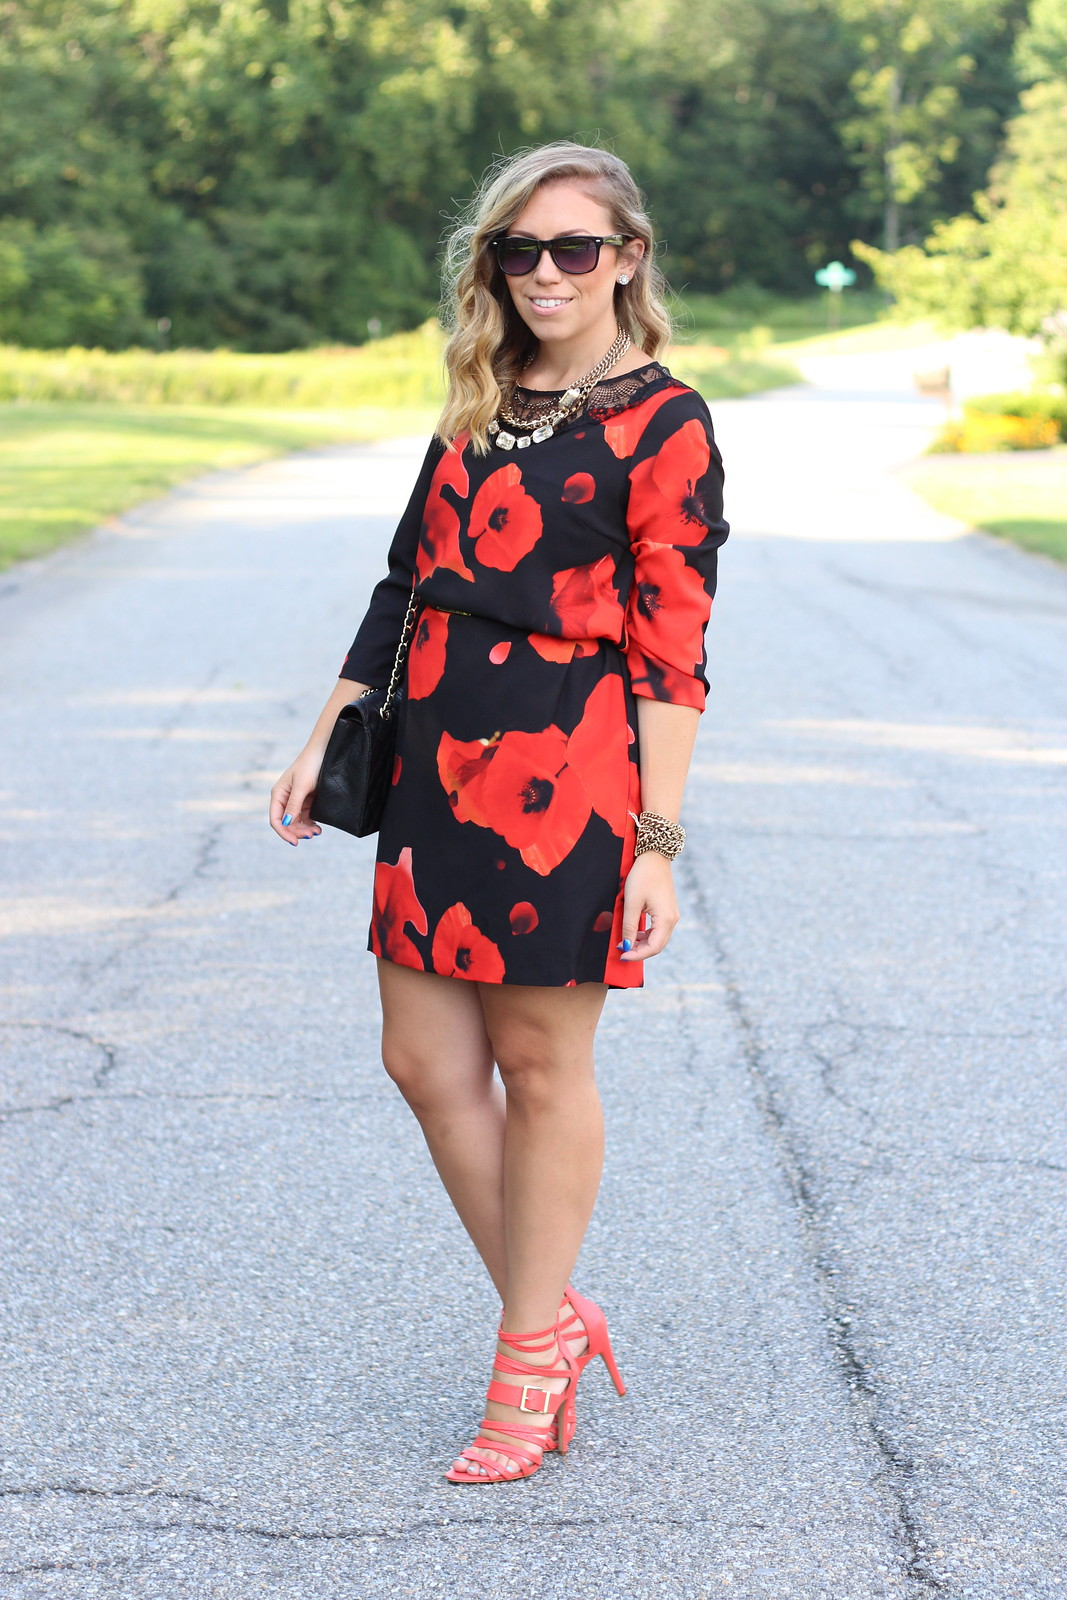 Dark Blooms Dress | Red Strappy Sandals | A Look Back at 10 Years of Blogging Living After Midnite Blogger Jackie Giardina